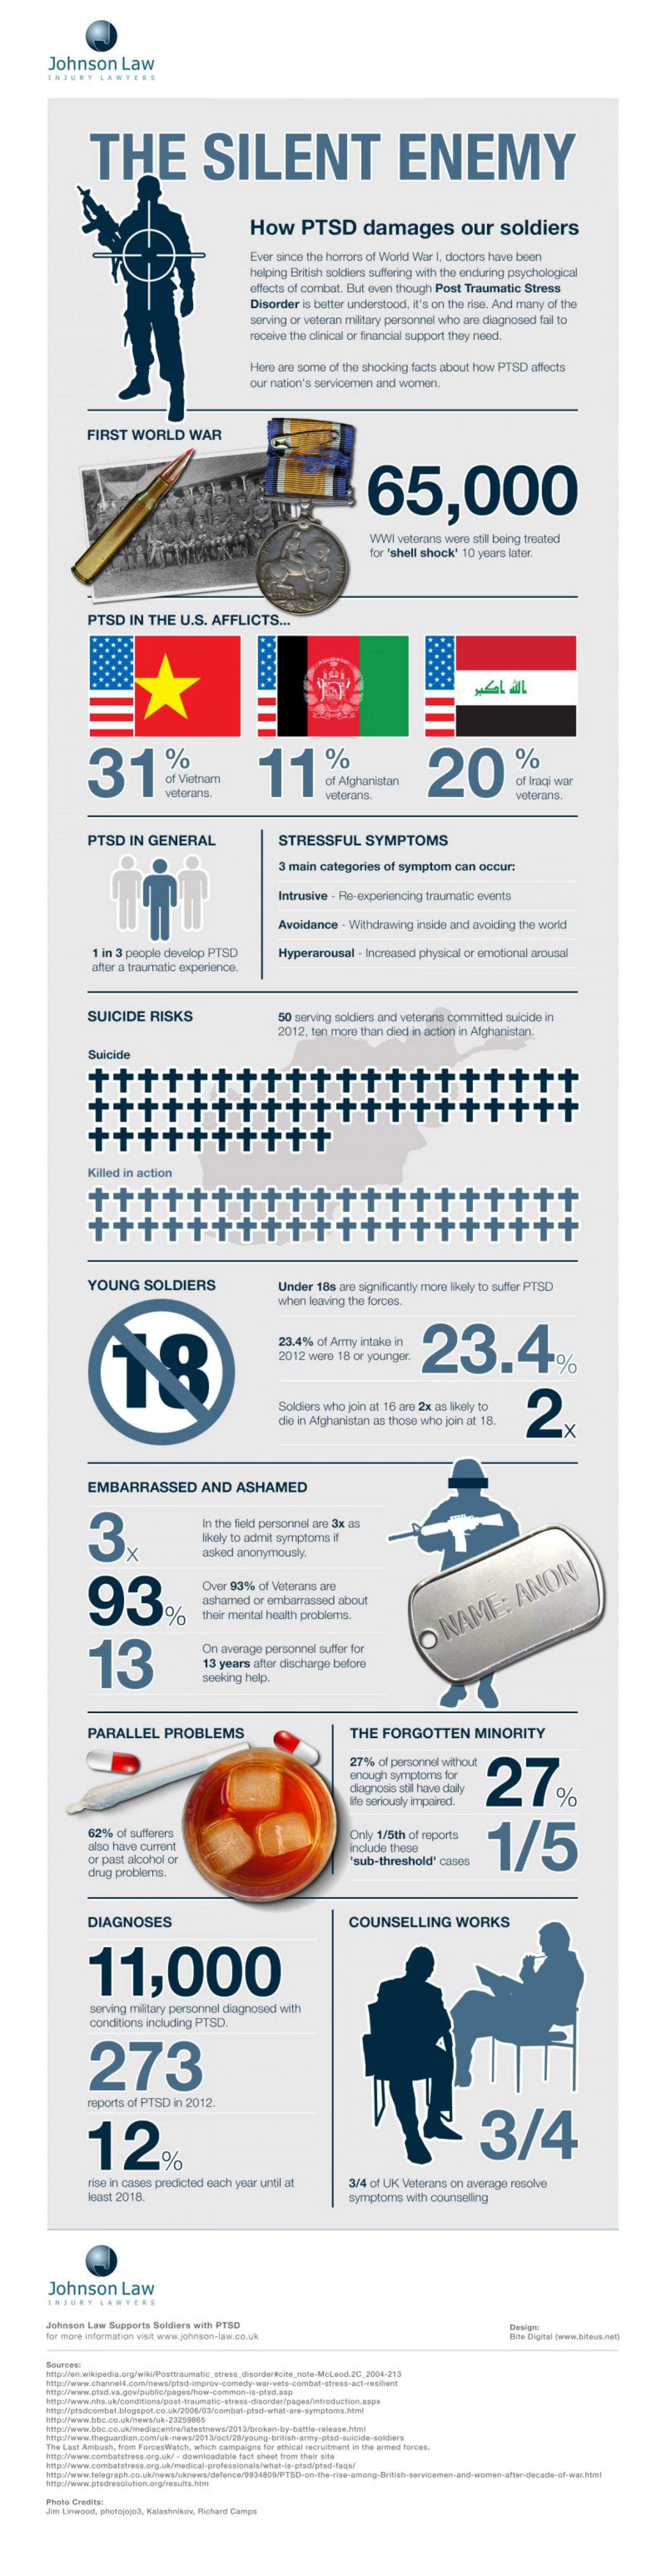 The Silent Enemy: How PTSD damages our soldiers Infographic